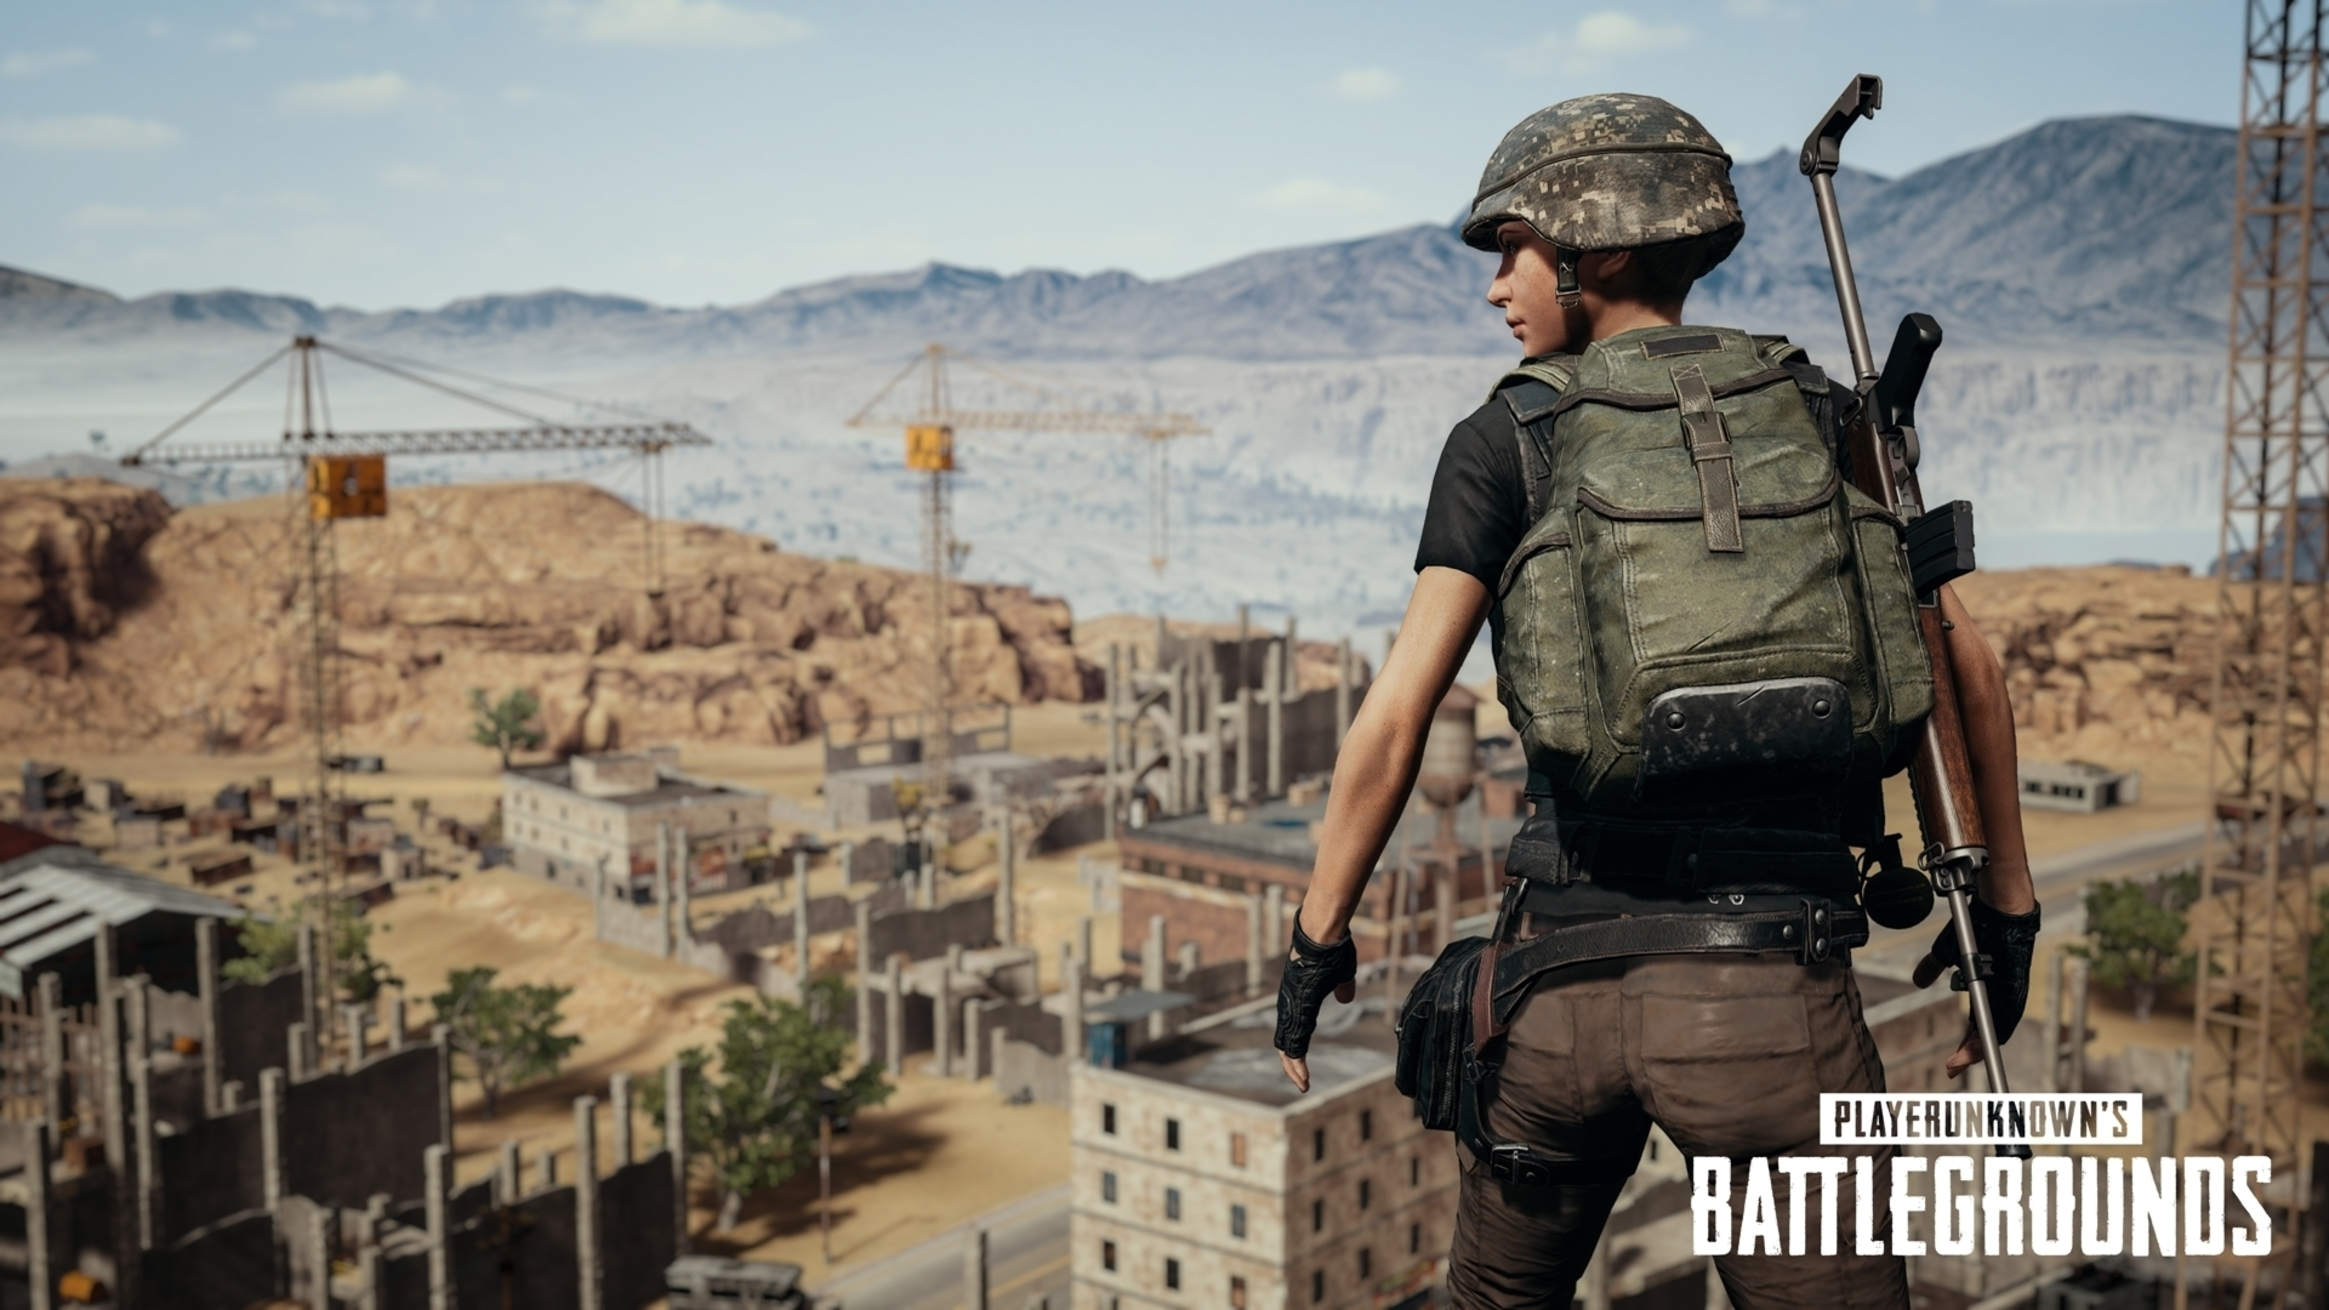 Pubg Christmas Wallpaper: Player Unknown's Battlegrounds (PUBG) 4K Pubg Wallpaper